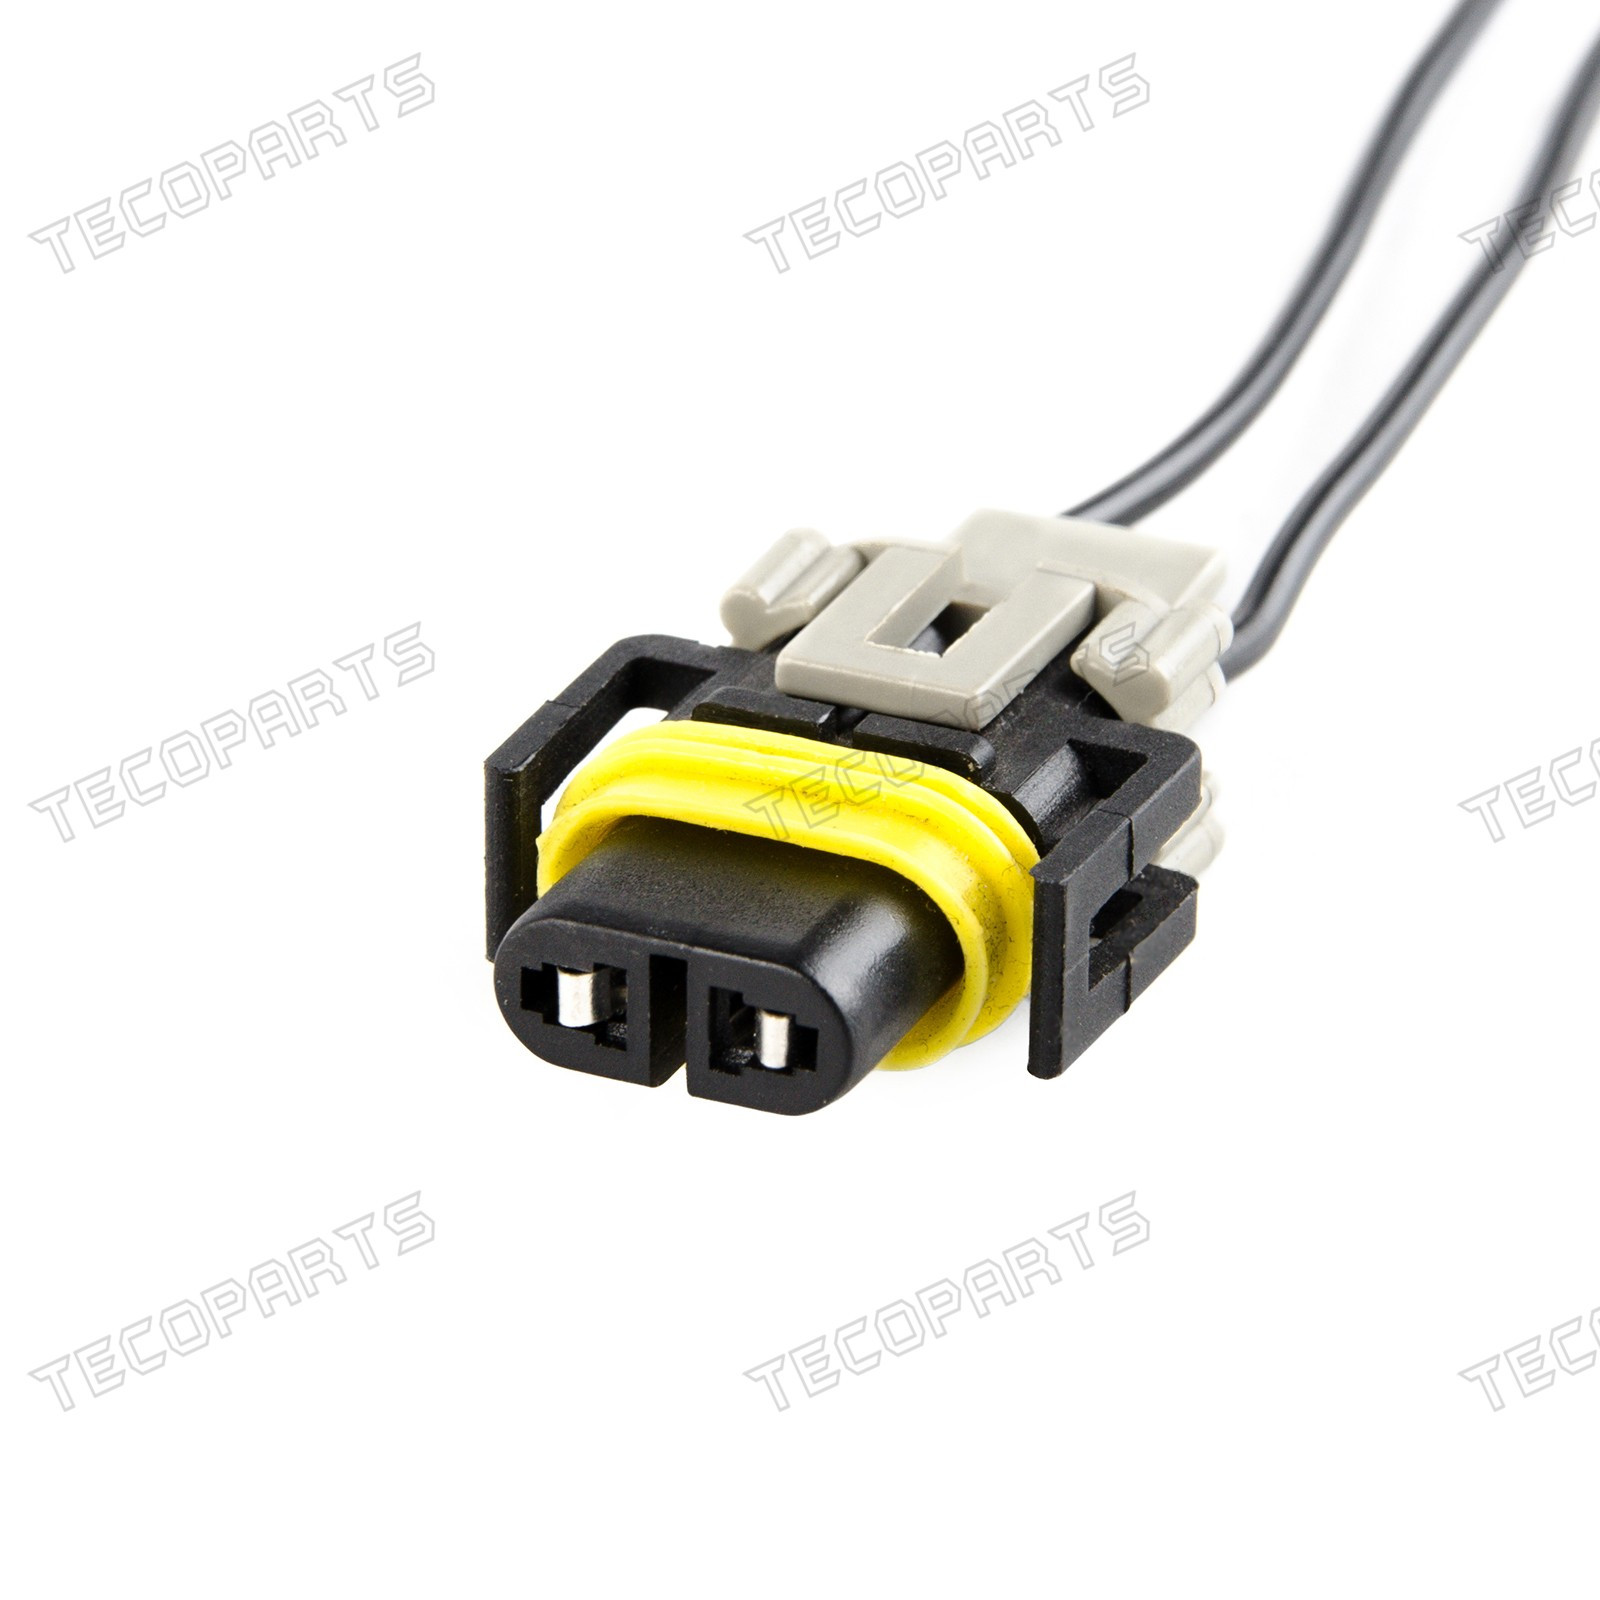 hight resolution of vss vehicle speed sensor connector wiring harness plug for gm tpidetails about vss vehicle speed sensor